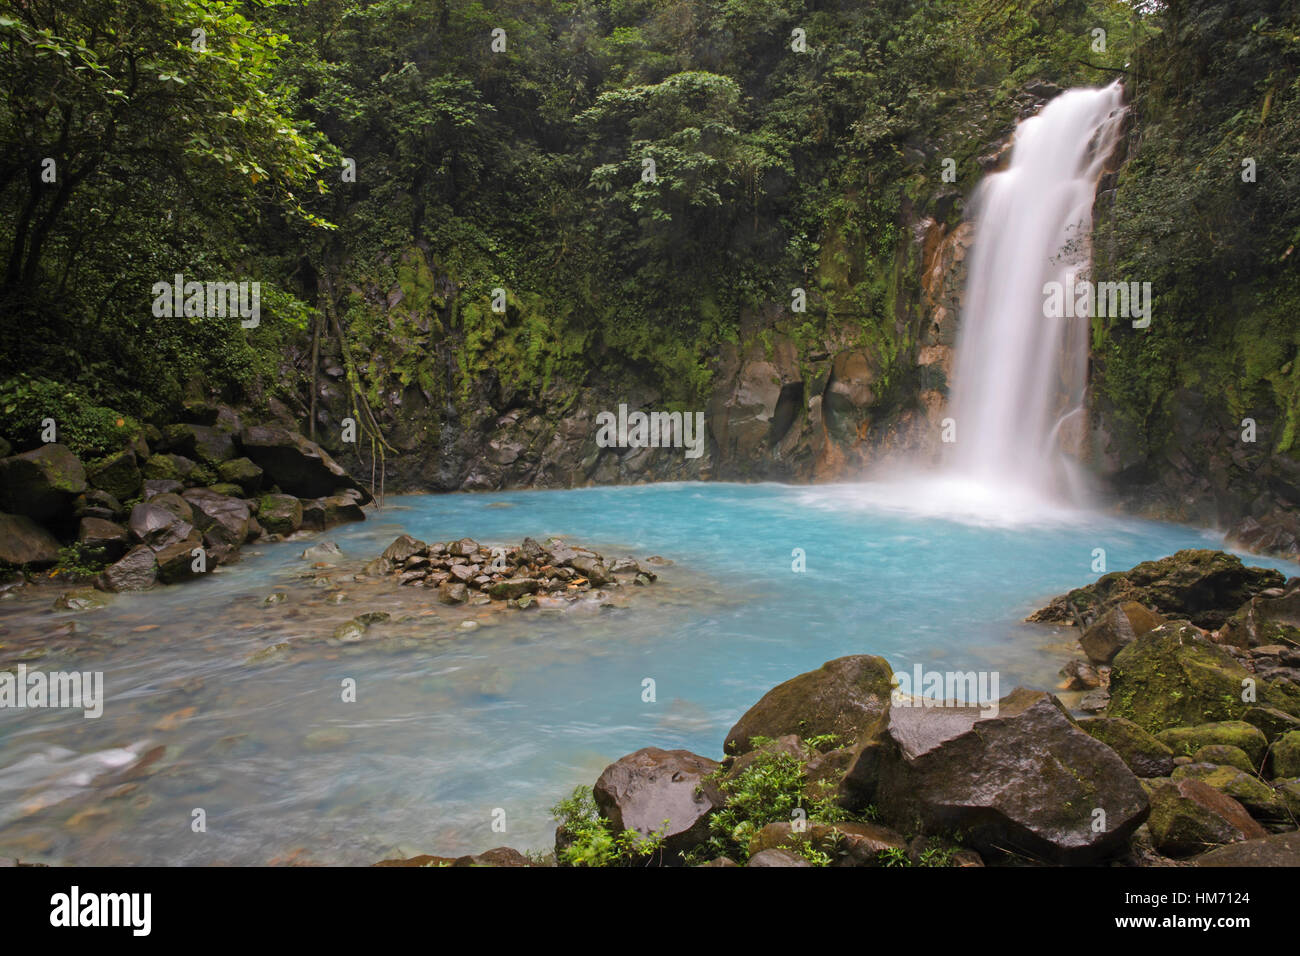 Rio Celeste (Blue River) waterfall in Tenorio Volcano National Park, Costa Rica.  The blue coloration is a result Stock Photo